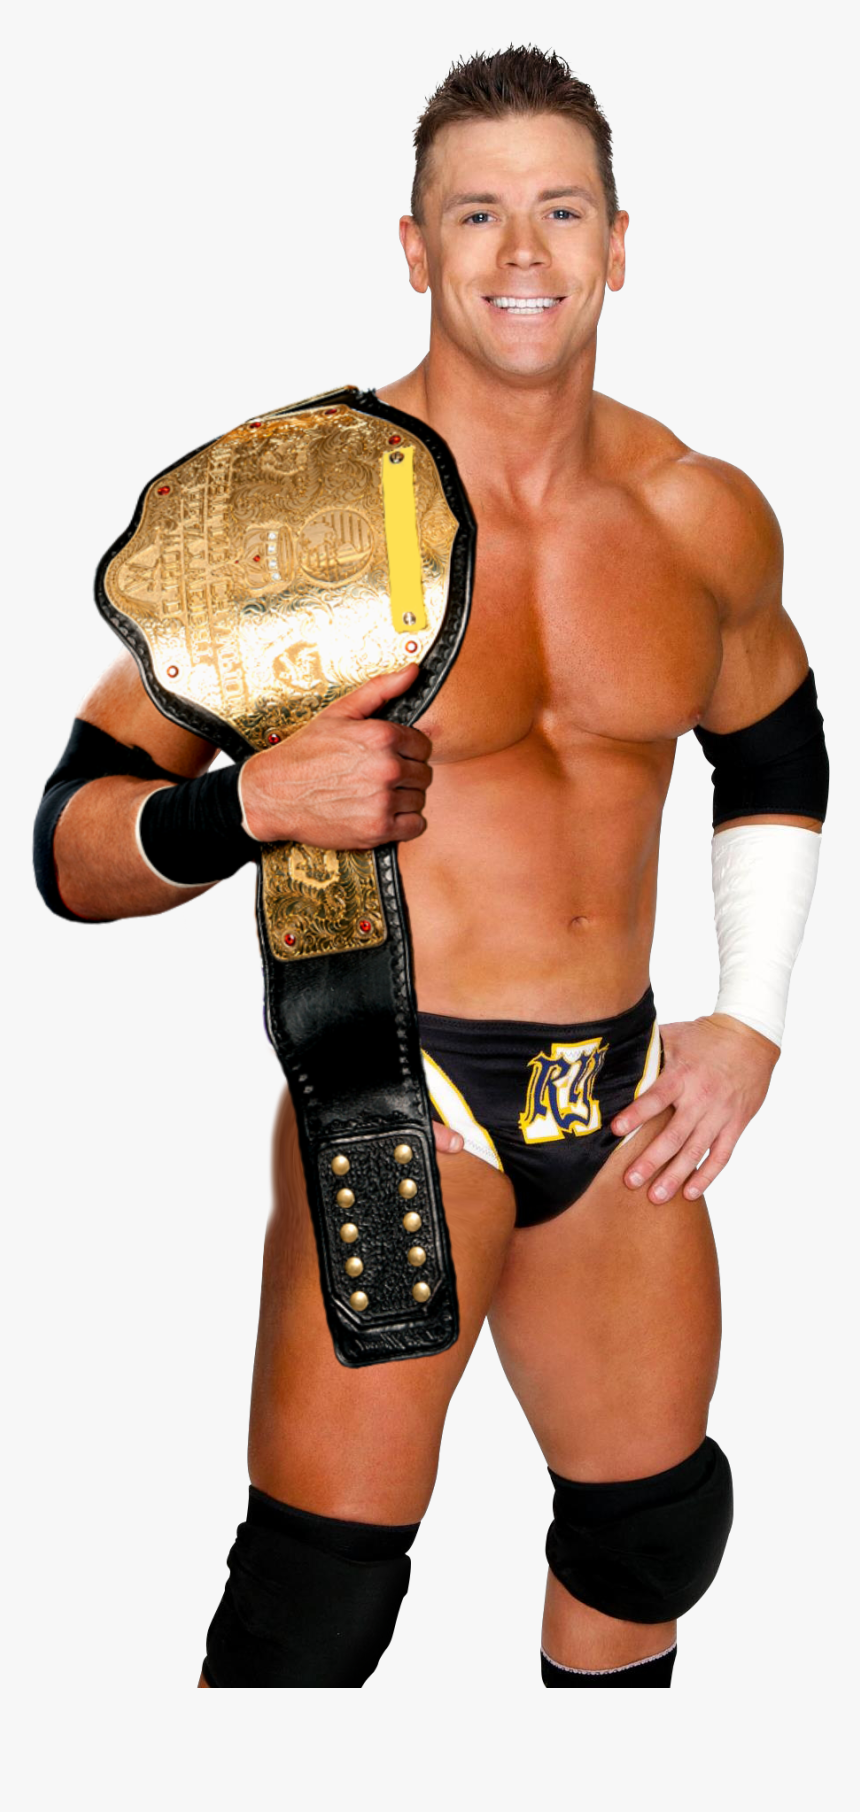 World Heavyweight Championship Png, Transparent Png, Free Download